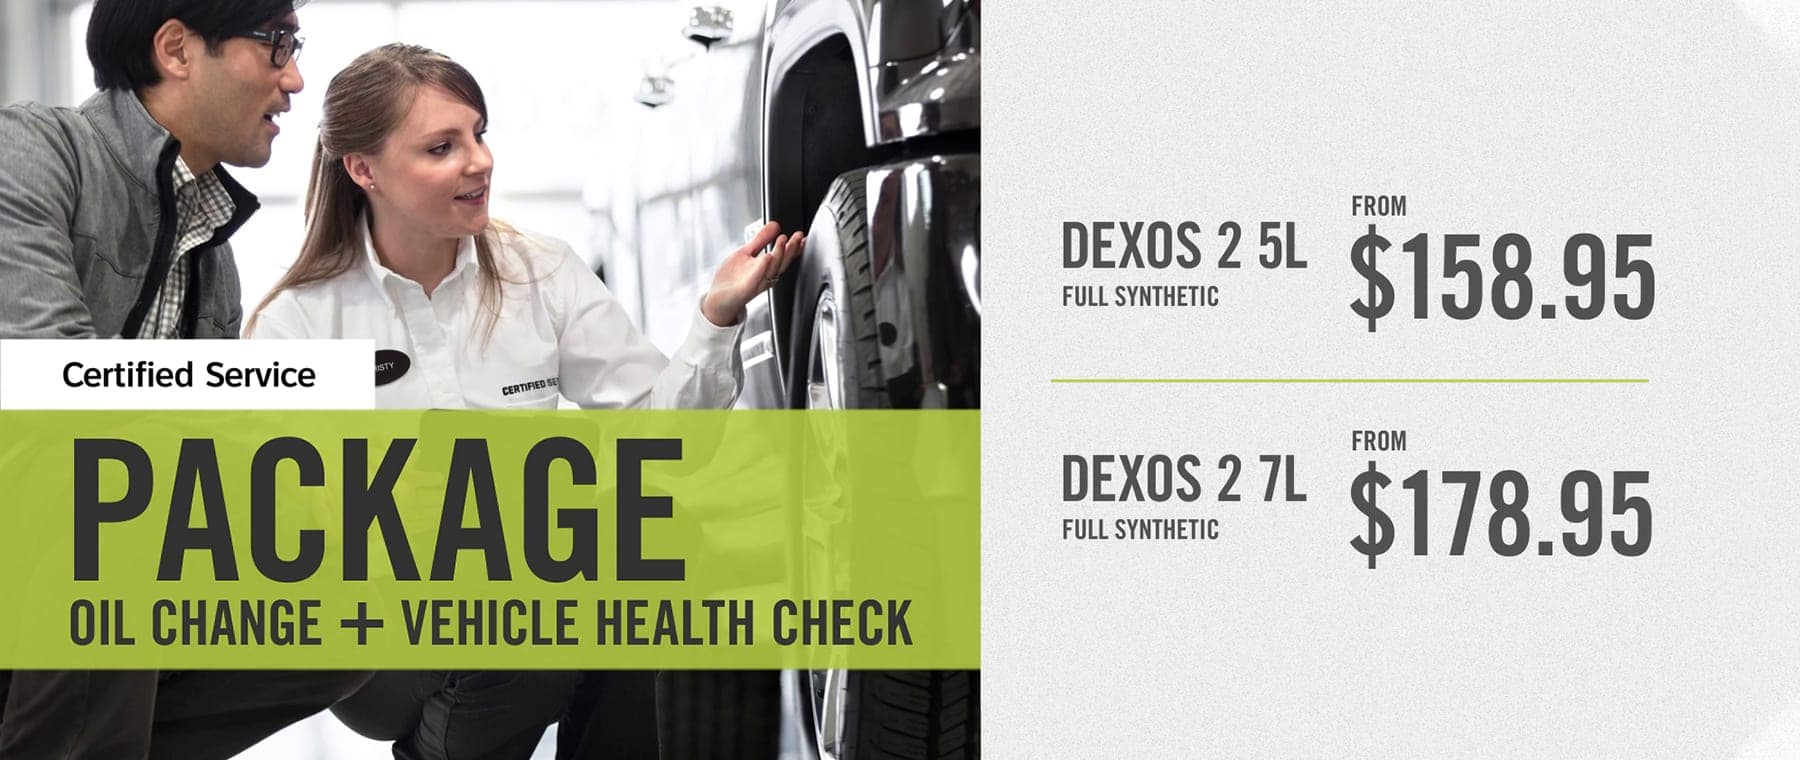 Certified Service Oil Change MPVI Vehicle Health Check